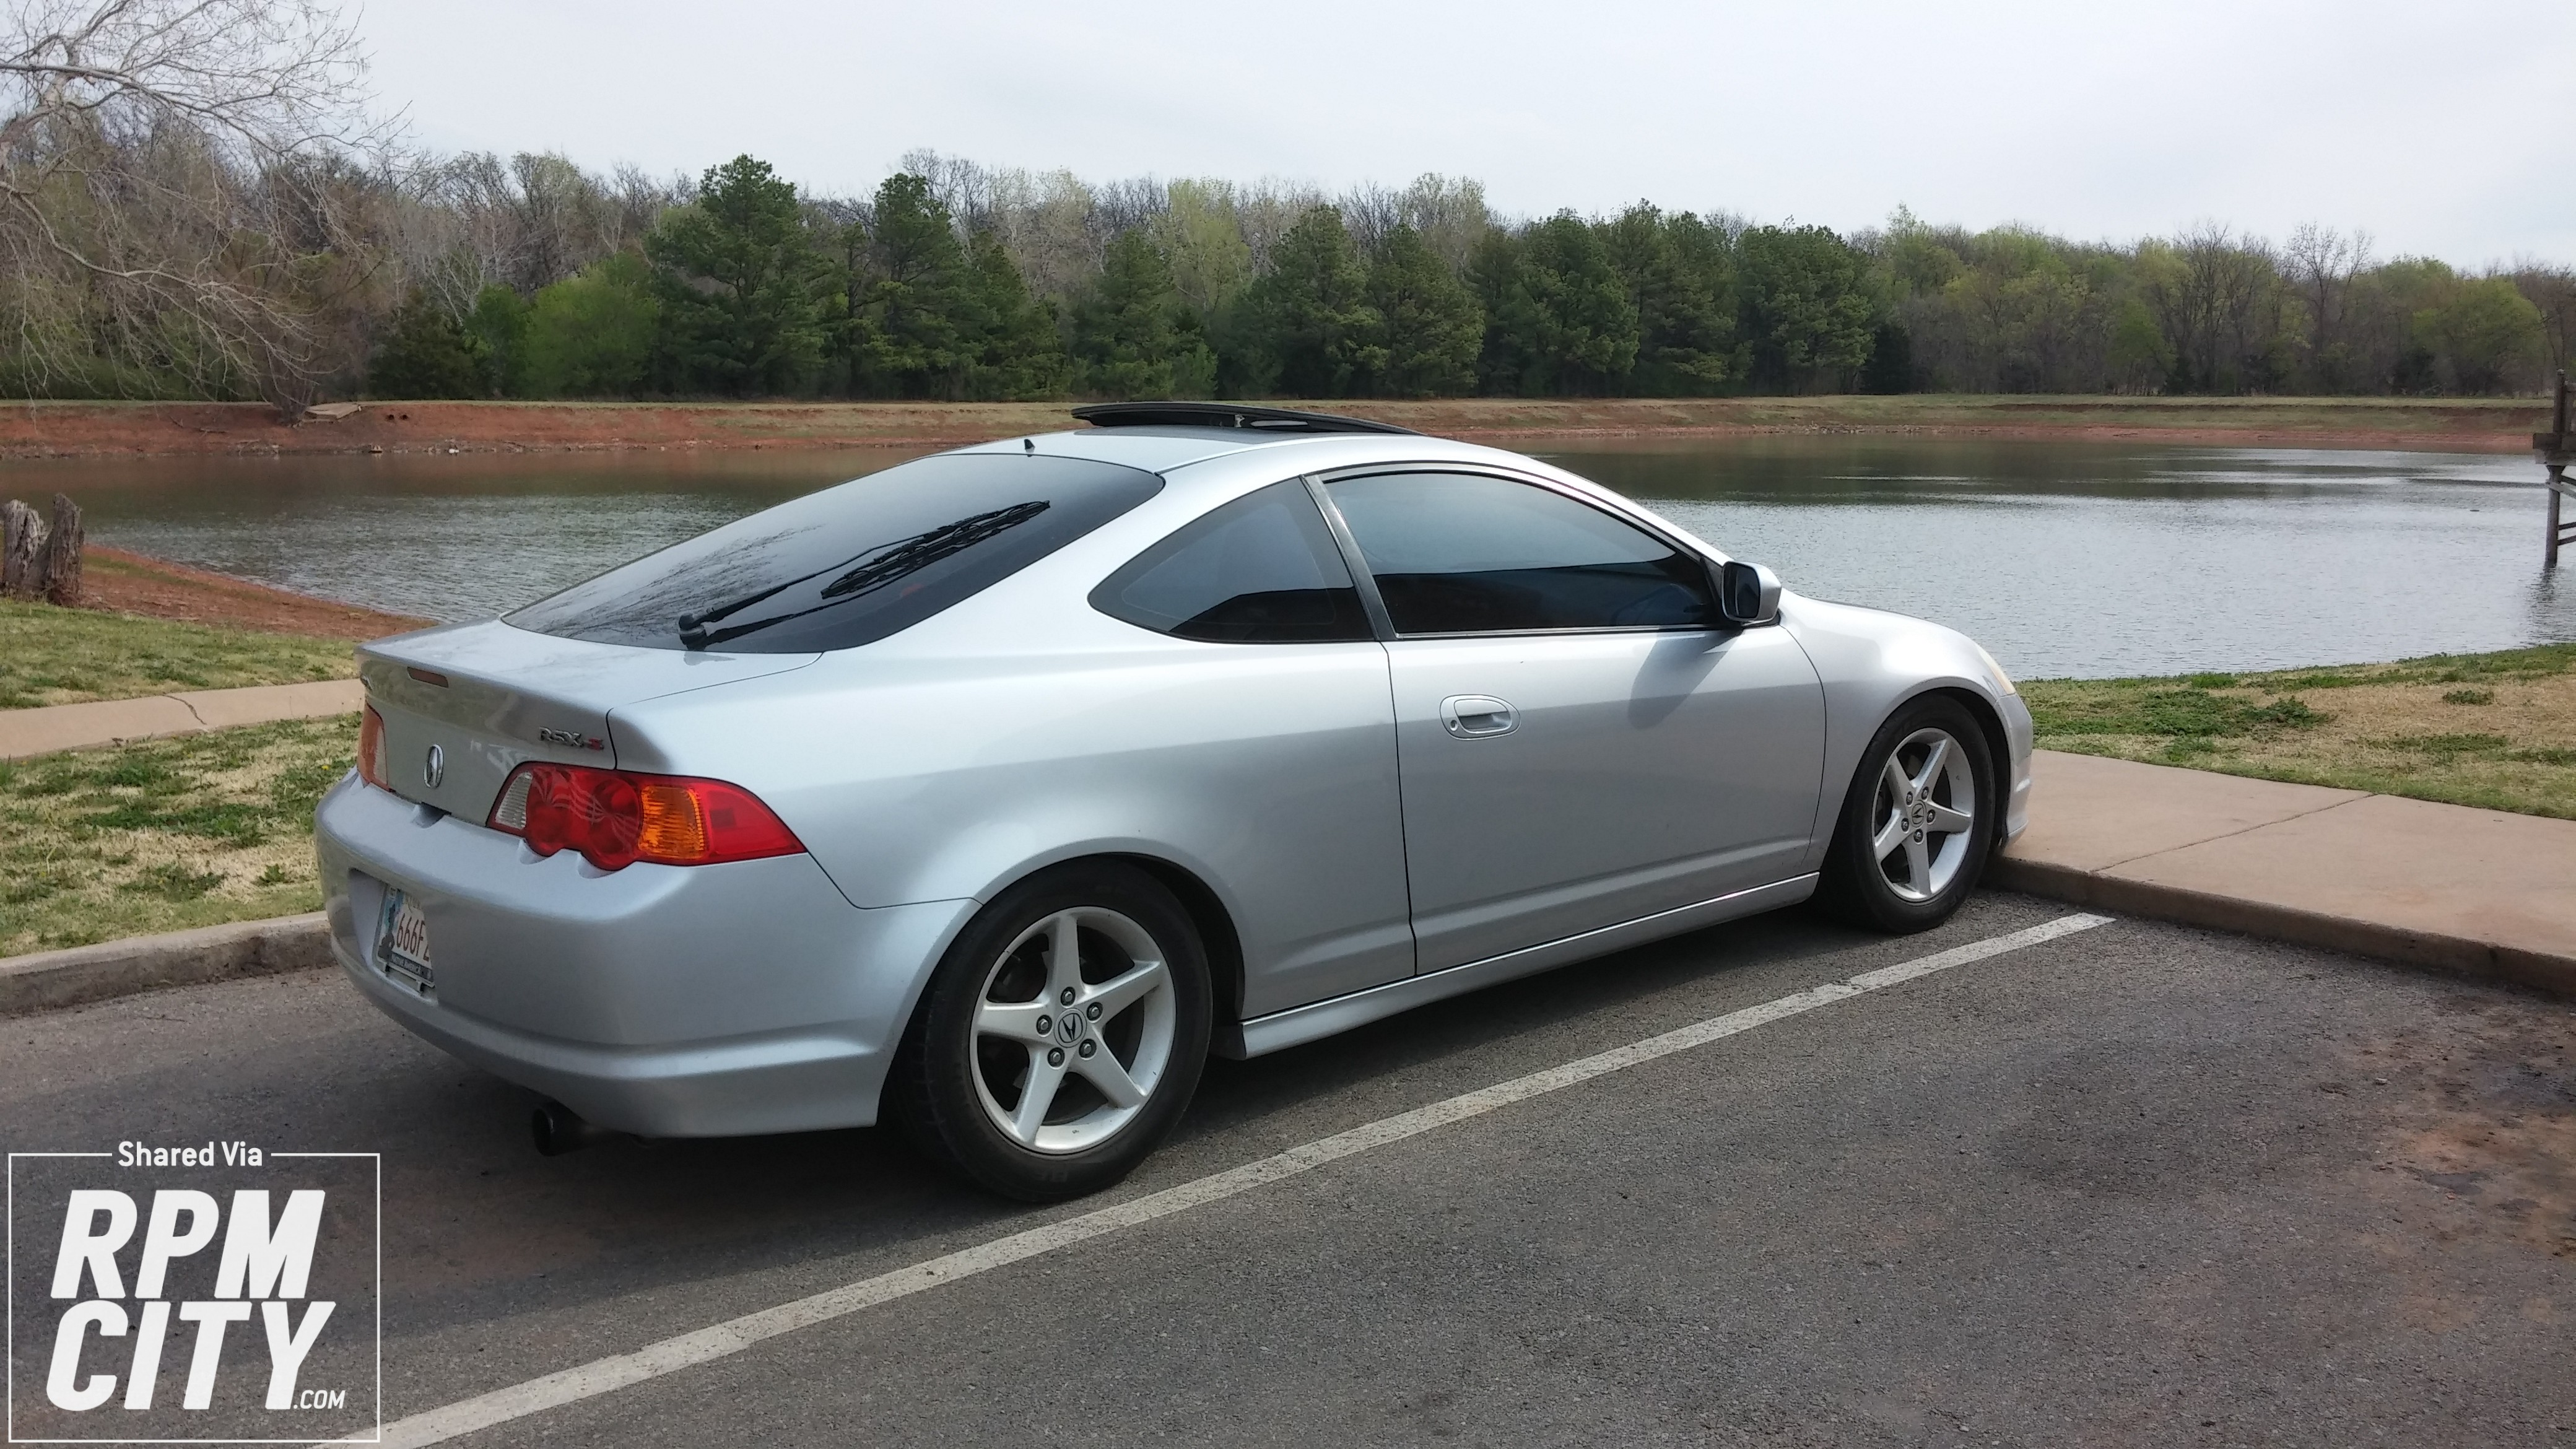 Gold Nissan Altima >> 2002 Rsx Type S, on Clubrsx lowered springs - Rpm City